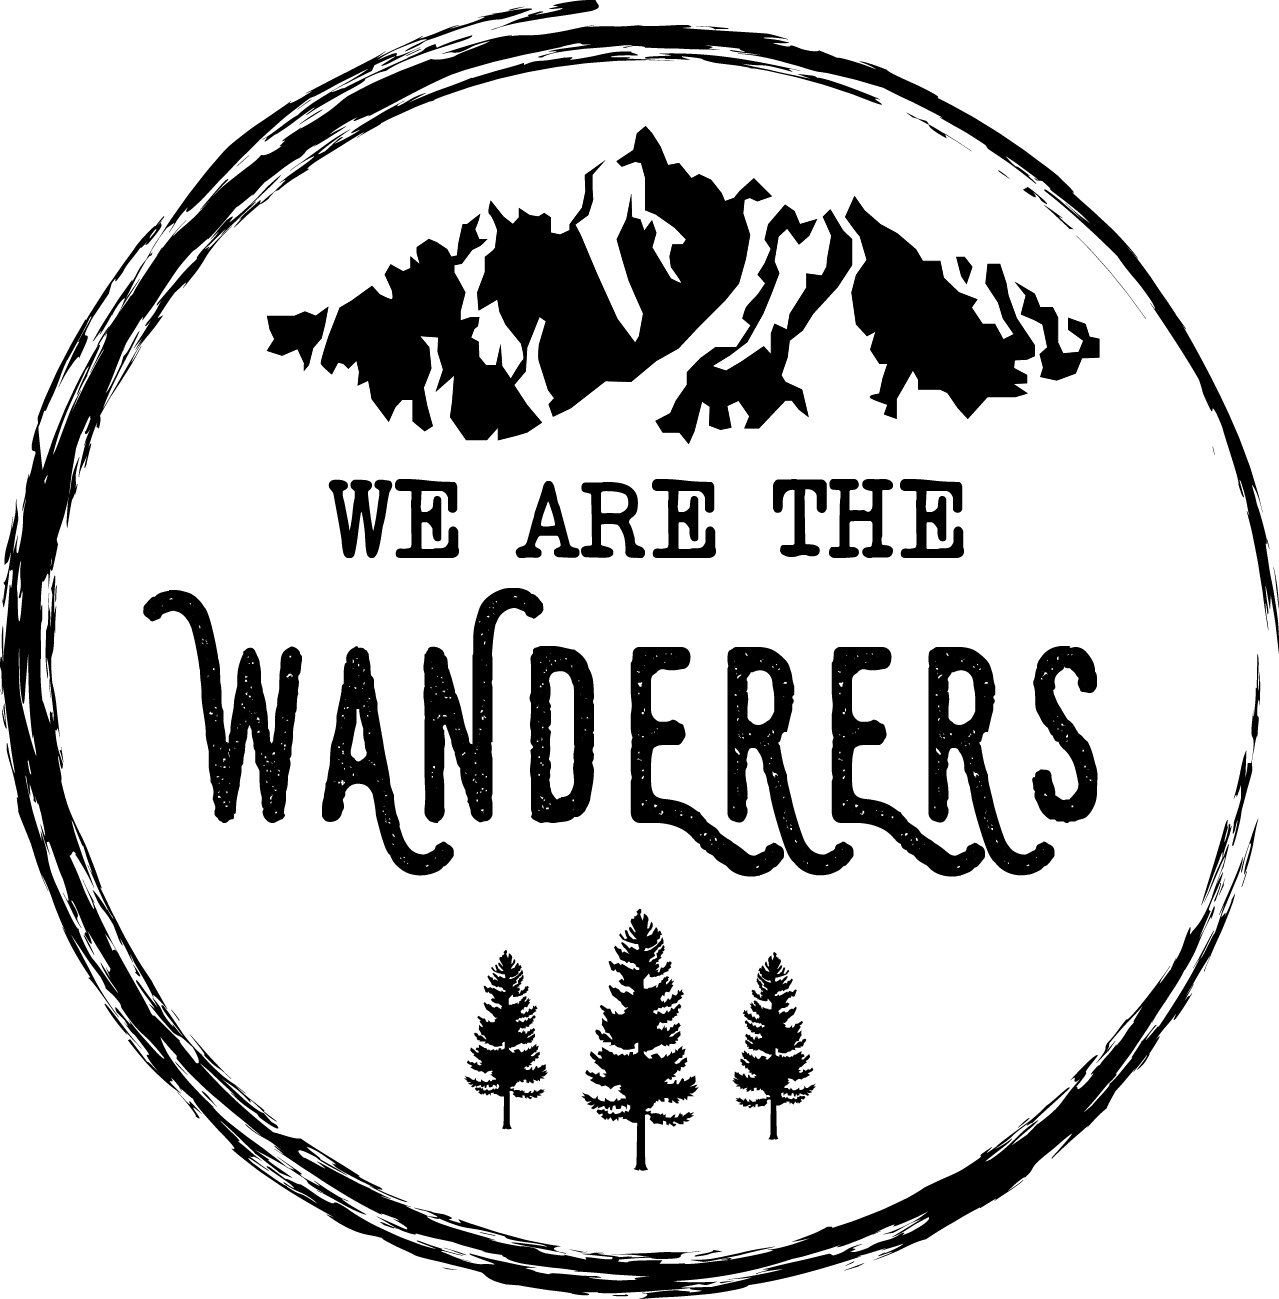 We-Are-The-Wanderers_LOGO_black.png